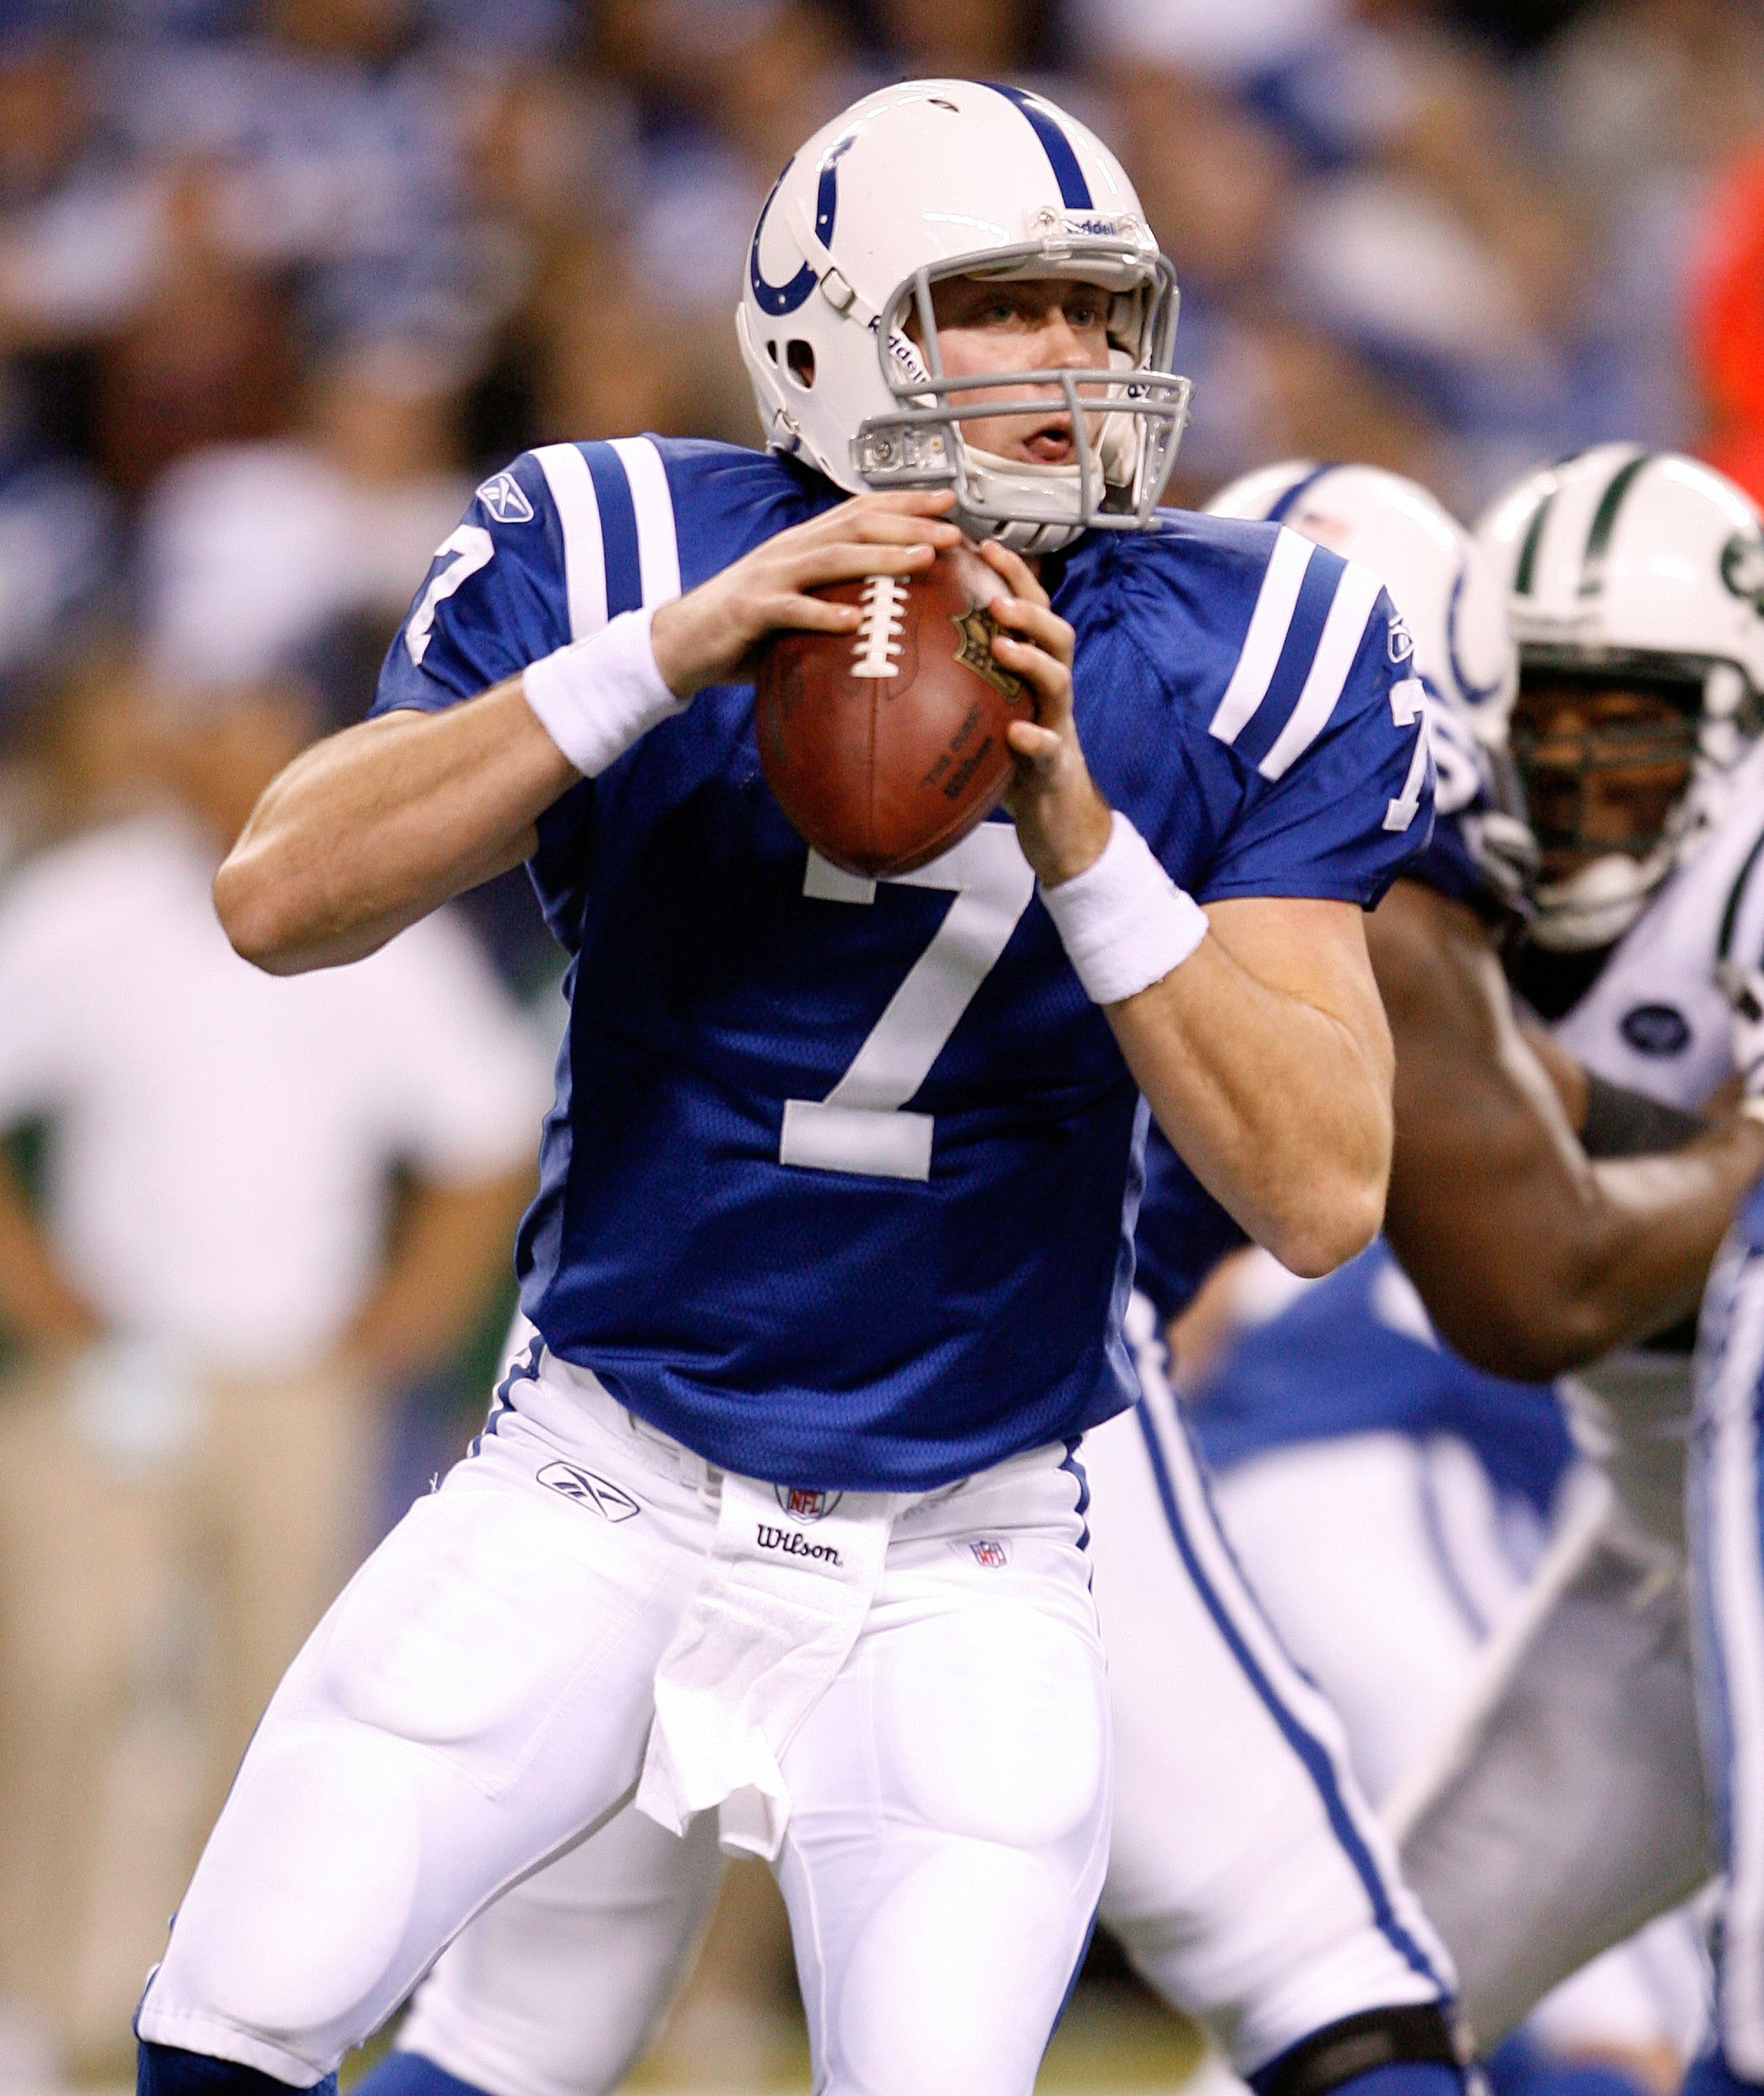 INDIANAPOLIS - DECEMBER 27:  Curtis Painter #7 of the Indianapolis Colts throws the ball during the NFL game against the New York Jets at Lucas Oil Stadium on December 27, 2009 in Indianapolis, Indiana.  (Photo by Andy Lyons/Getty Images)